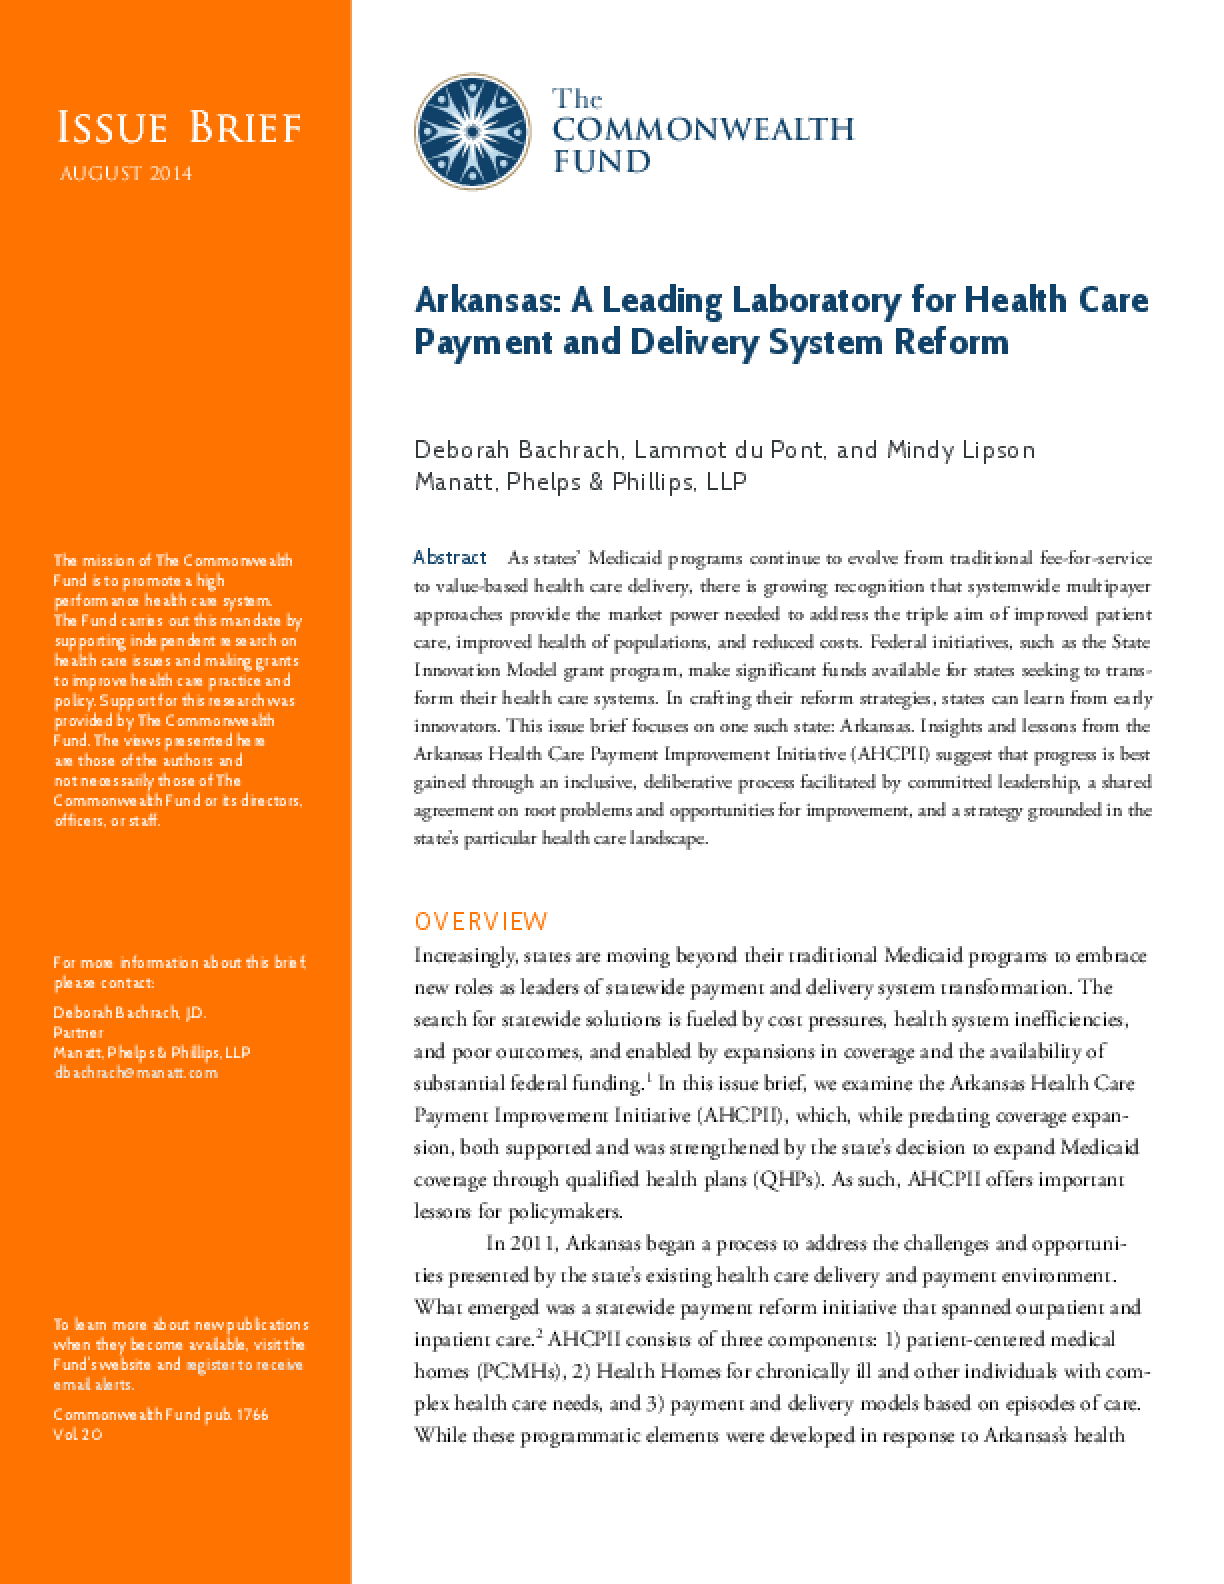 Arkansas: A Leading Laboratory for Health Care Payment and Delivery System Reform